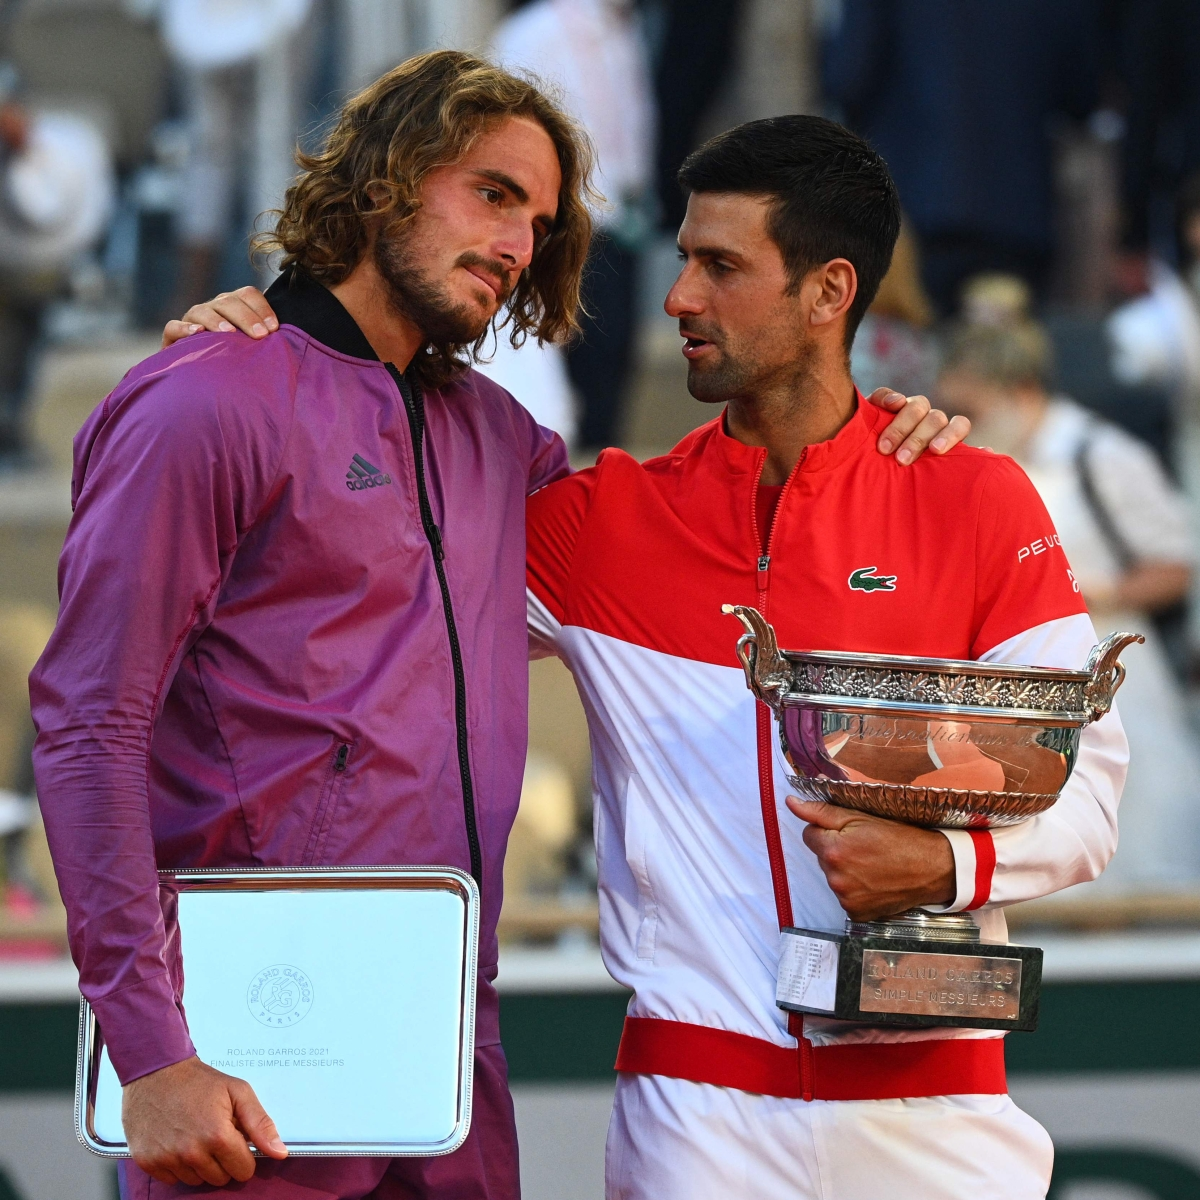 French Open: As Novak Djokovic ekes out hard fought victory, Twitter lauds Tsitsipas for putting up 'tough fight'